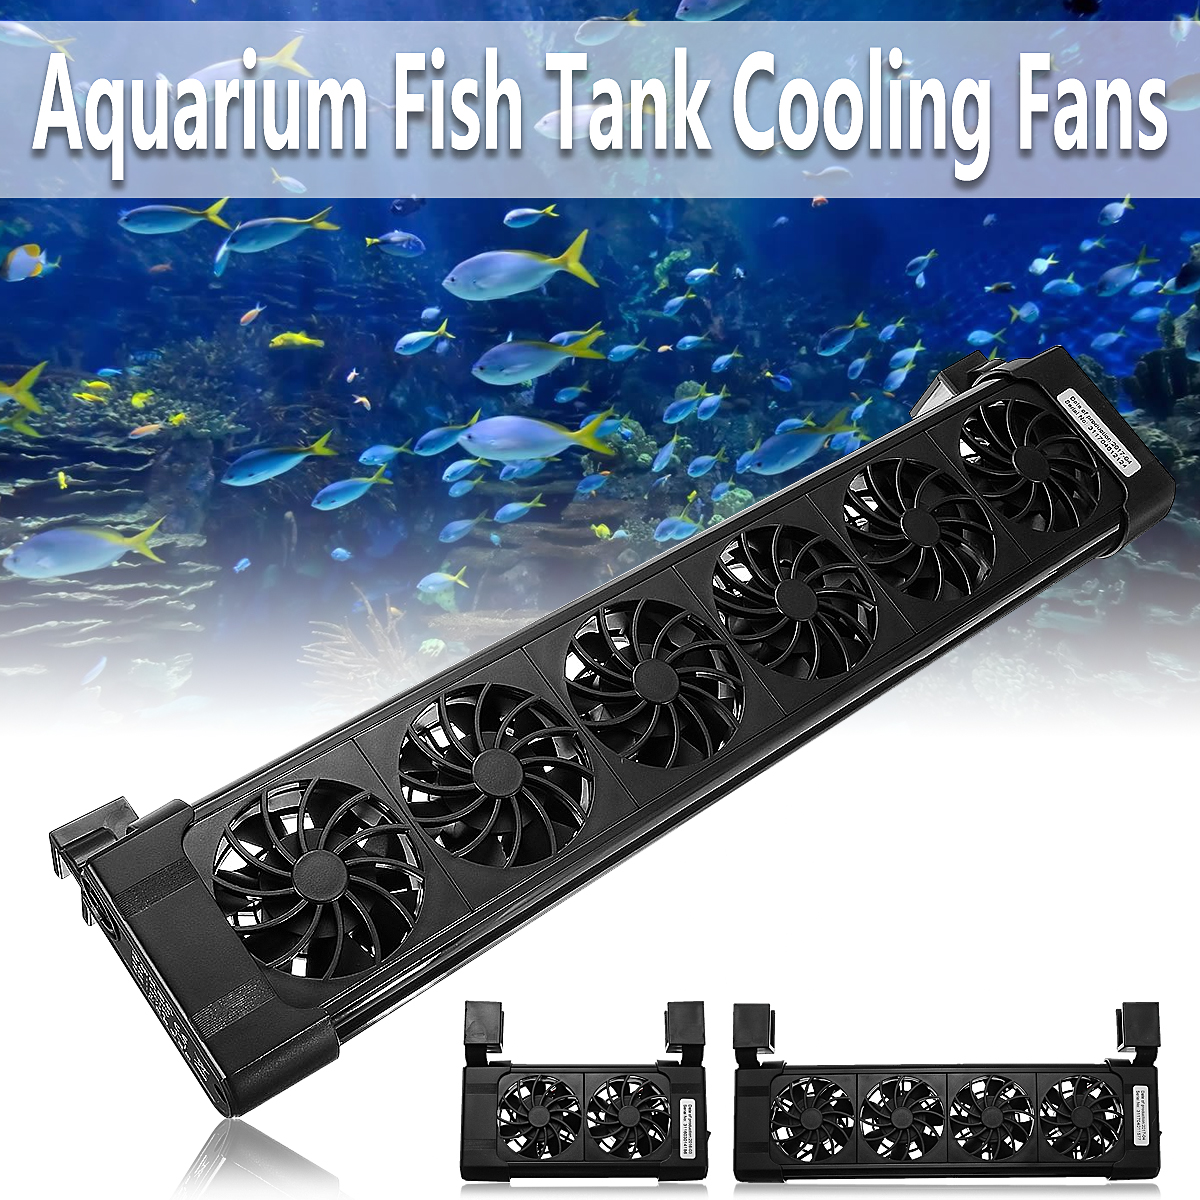 Adjustable Submersible Aquarium Cooling And Cooling Fan Aquarium Cooling Low Noise Radiator With Protection Net 2/3/4/5/6 Head